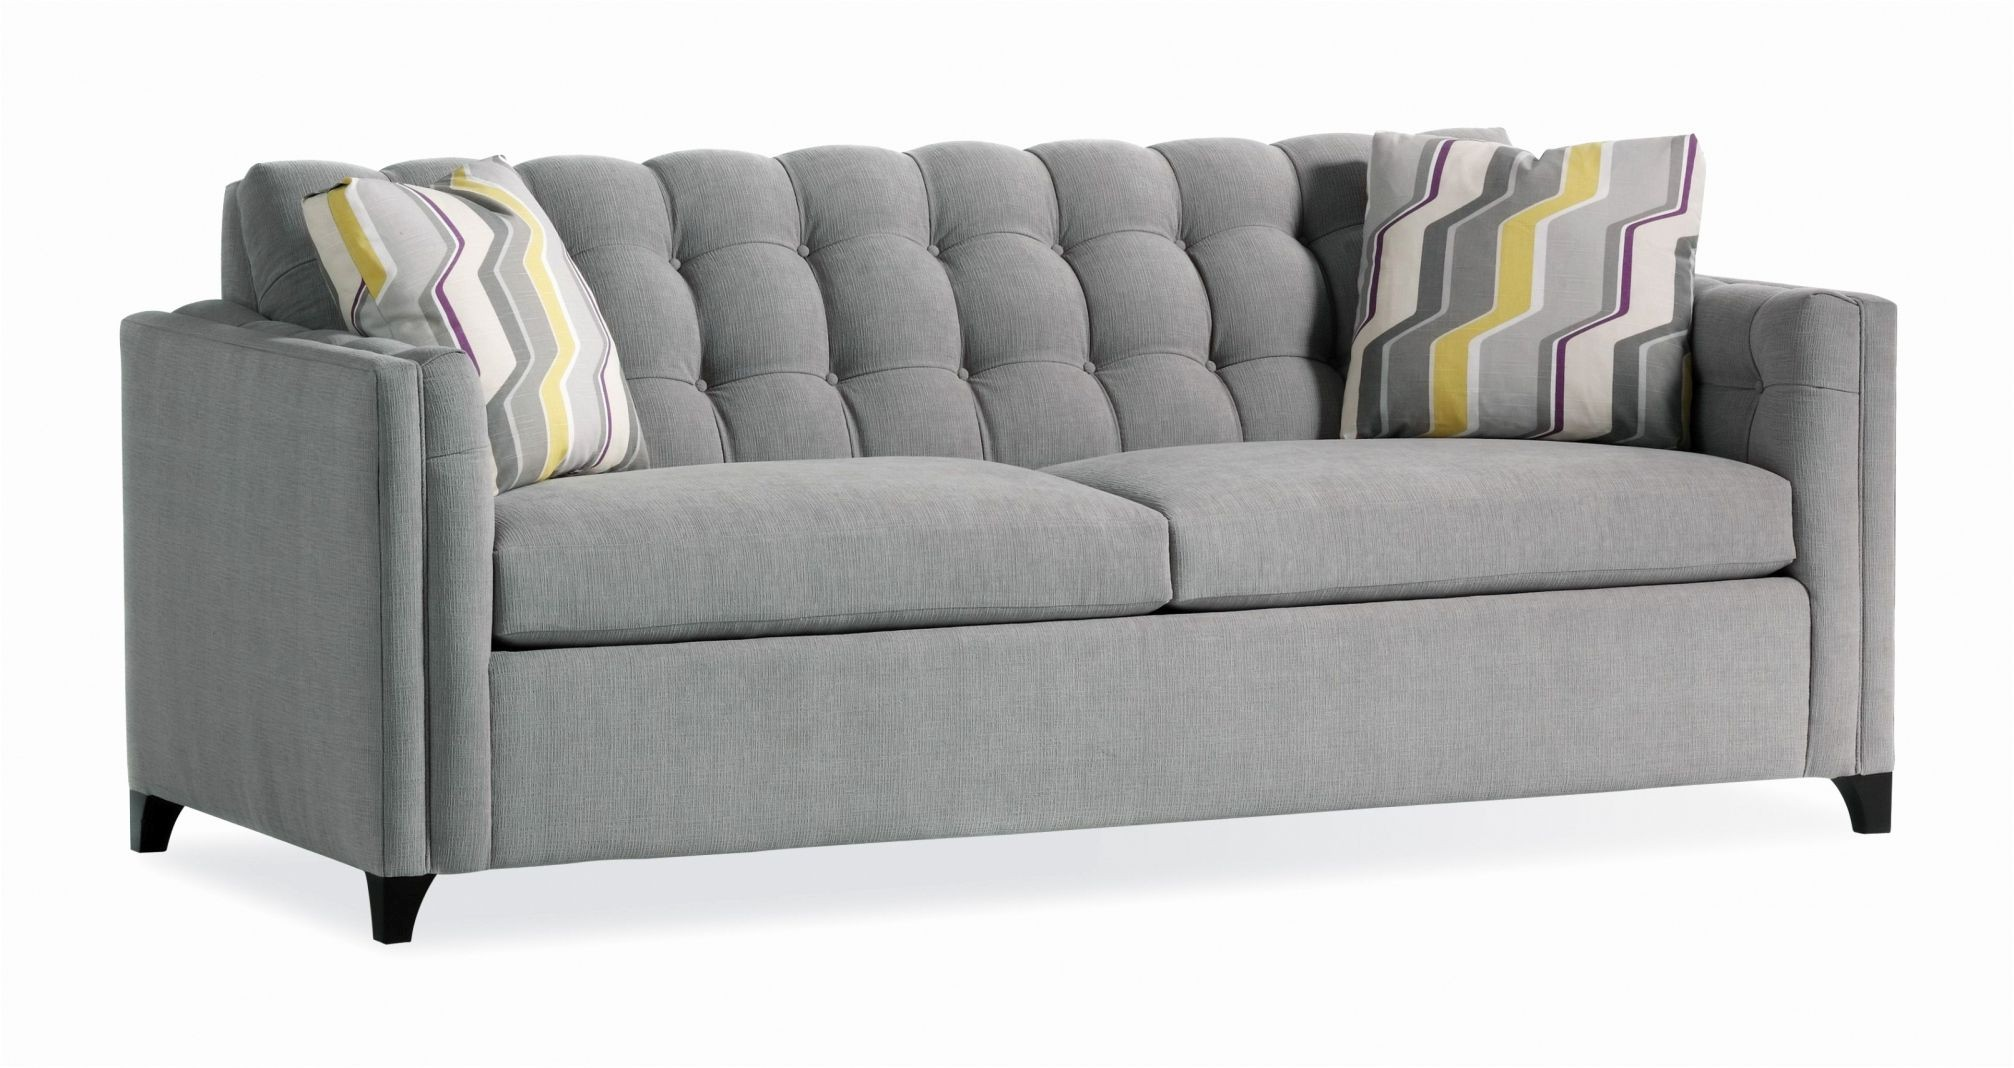 Cool Sleeper sofas for Small Spaces Plan - Modern Sofa ...